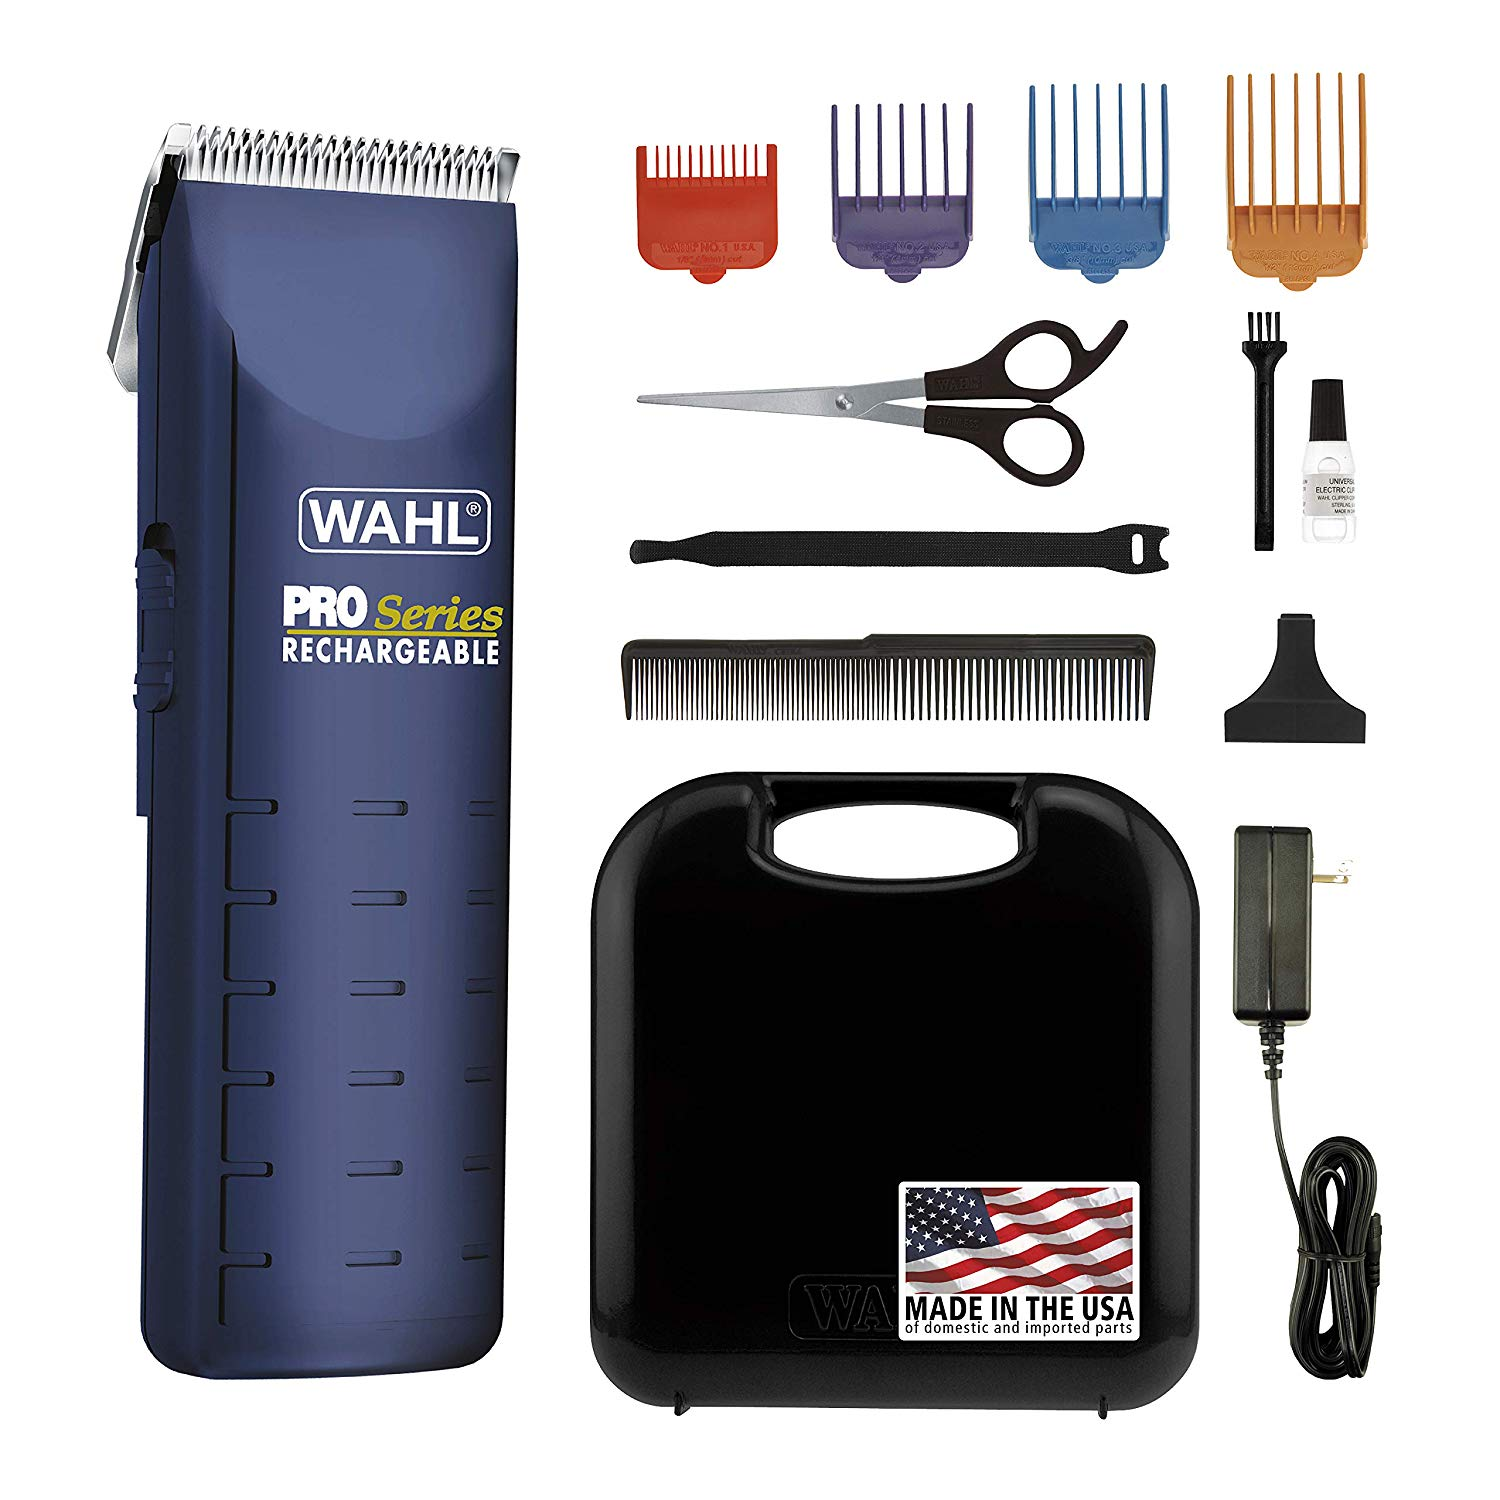 Wahl Home Pet Pro-Series Complete Pet Clipper Kit, for Pet Grooming, Trimming, and Touchups, Works Best on Fine to Medium Coated Dogs and Cats, or for Double Coated Clipping, 9590-210